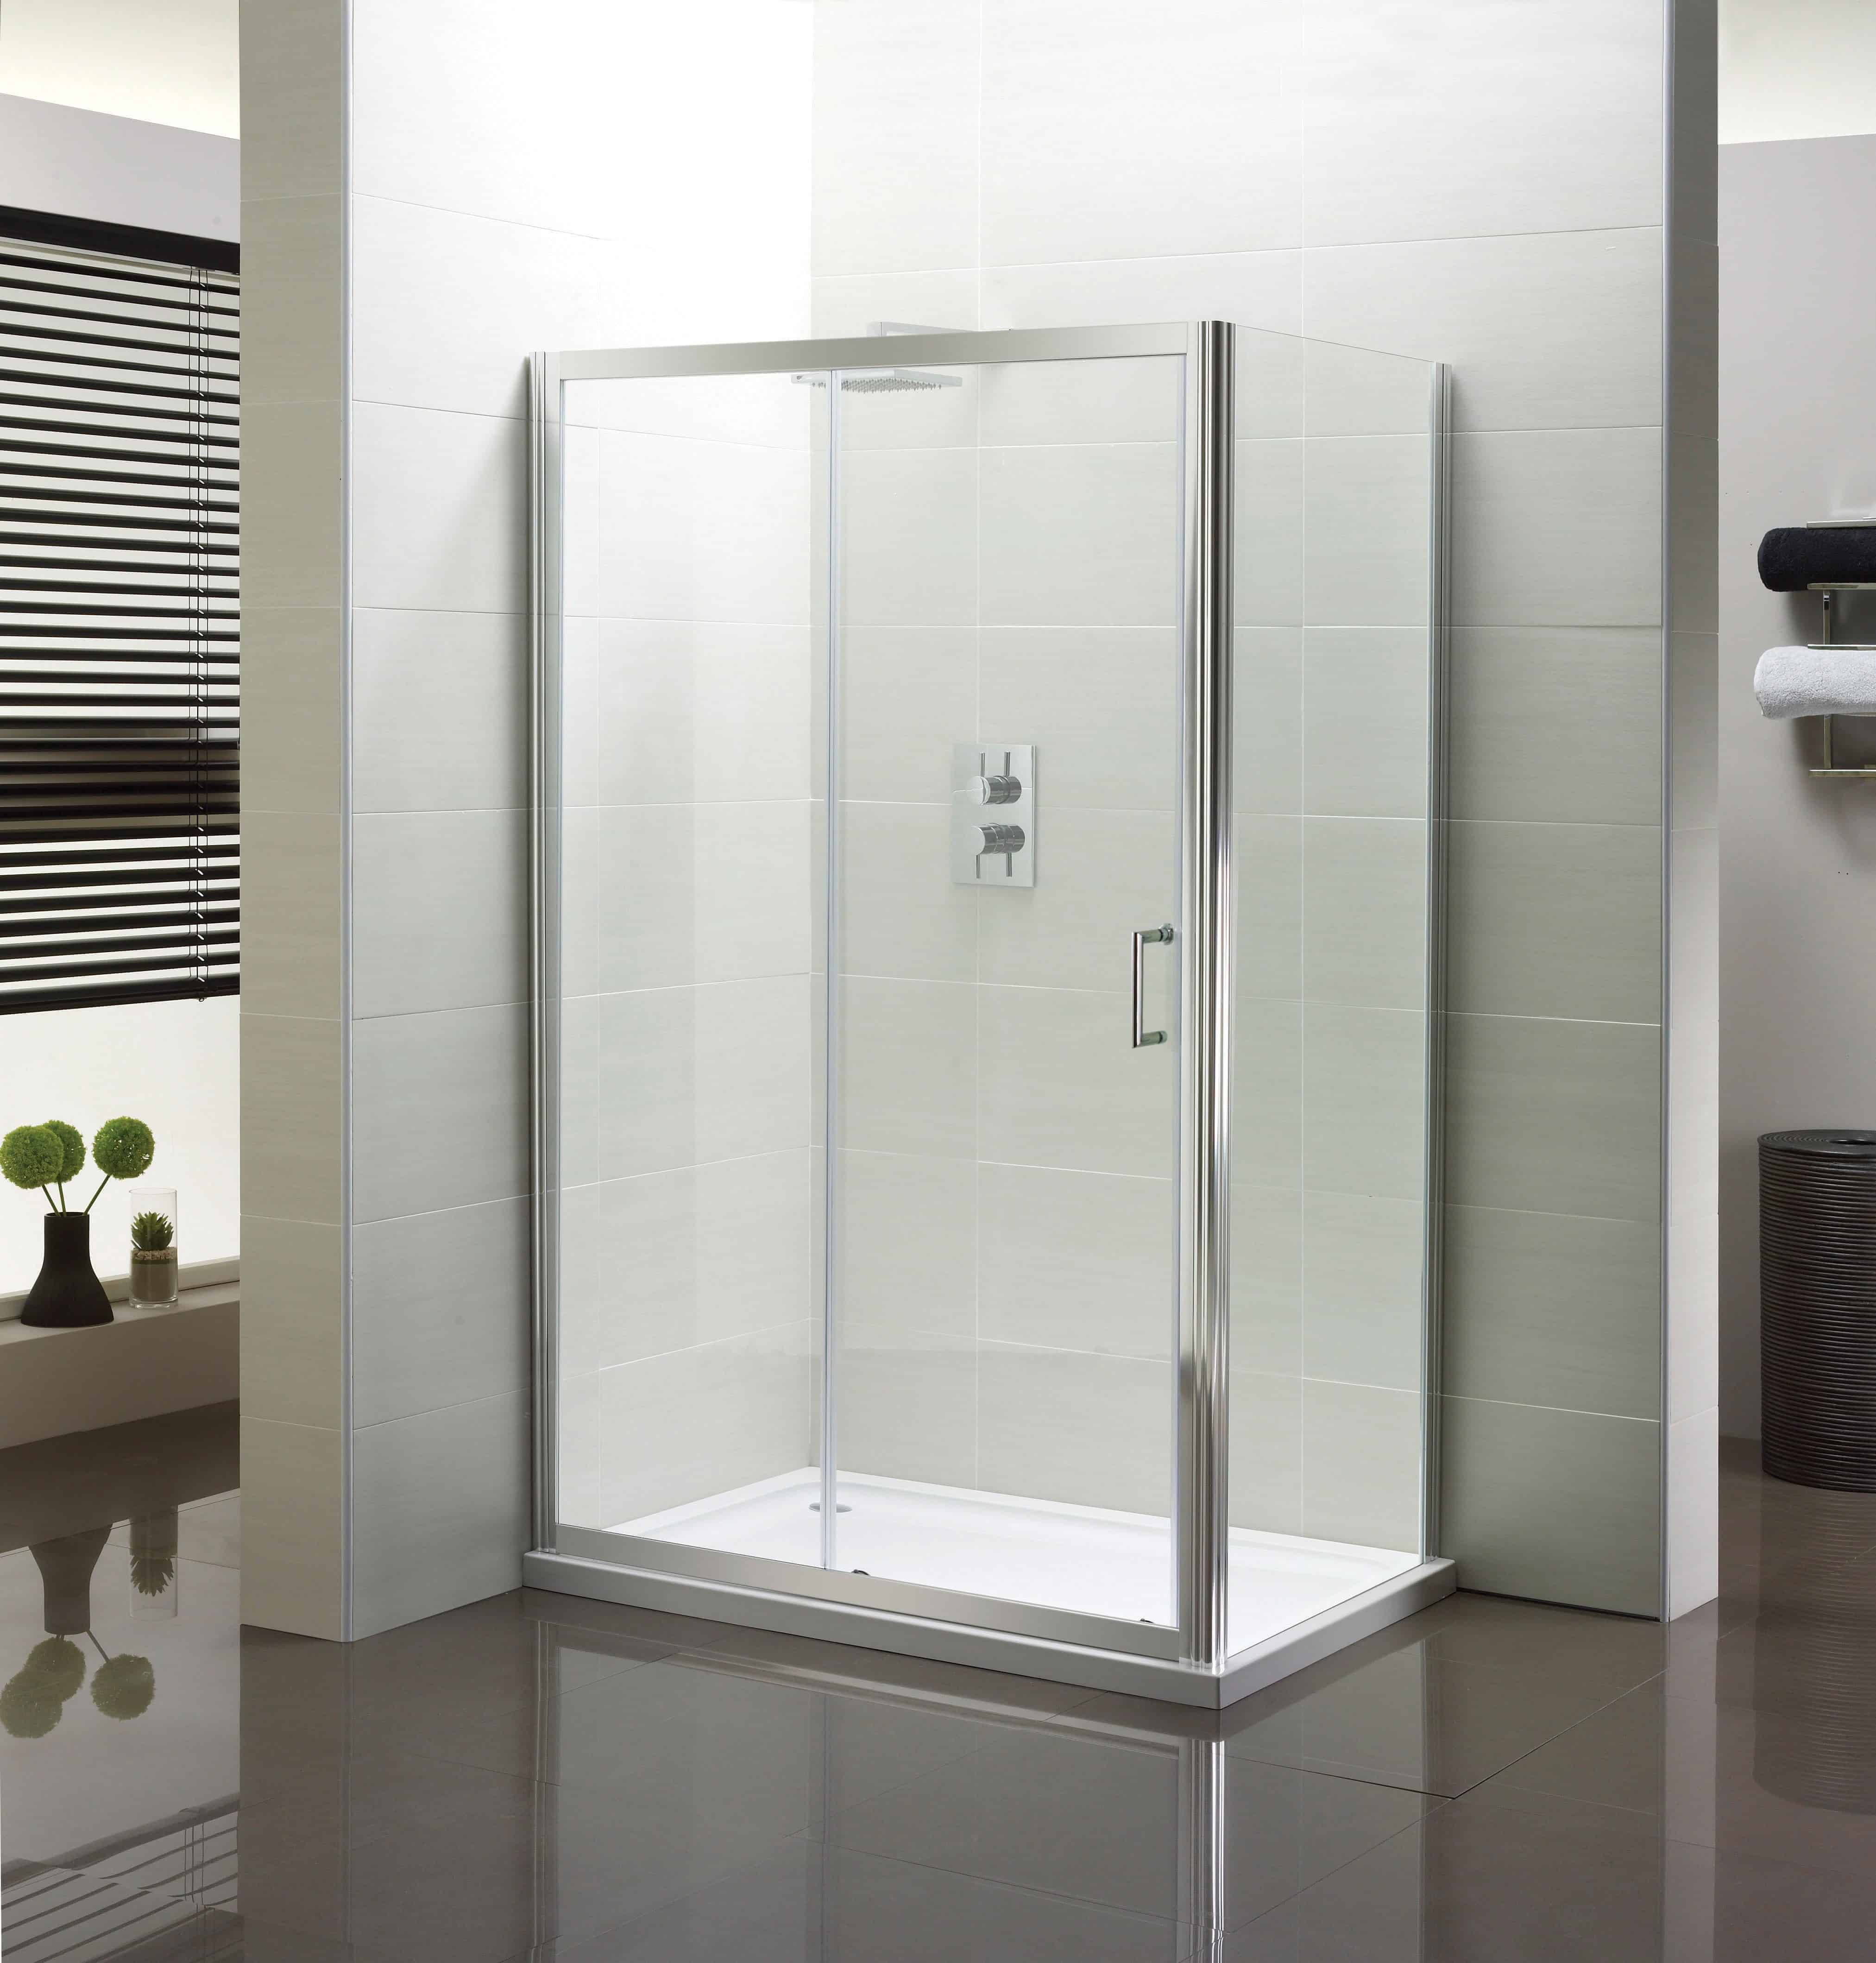 Aqua 1200mm Slider Shower Enclosure | Niko Bathrooms